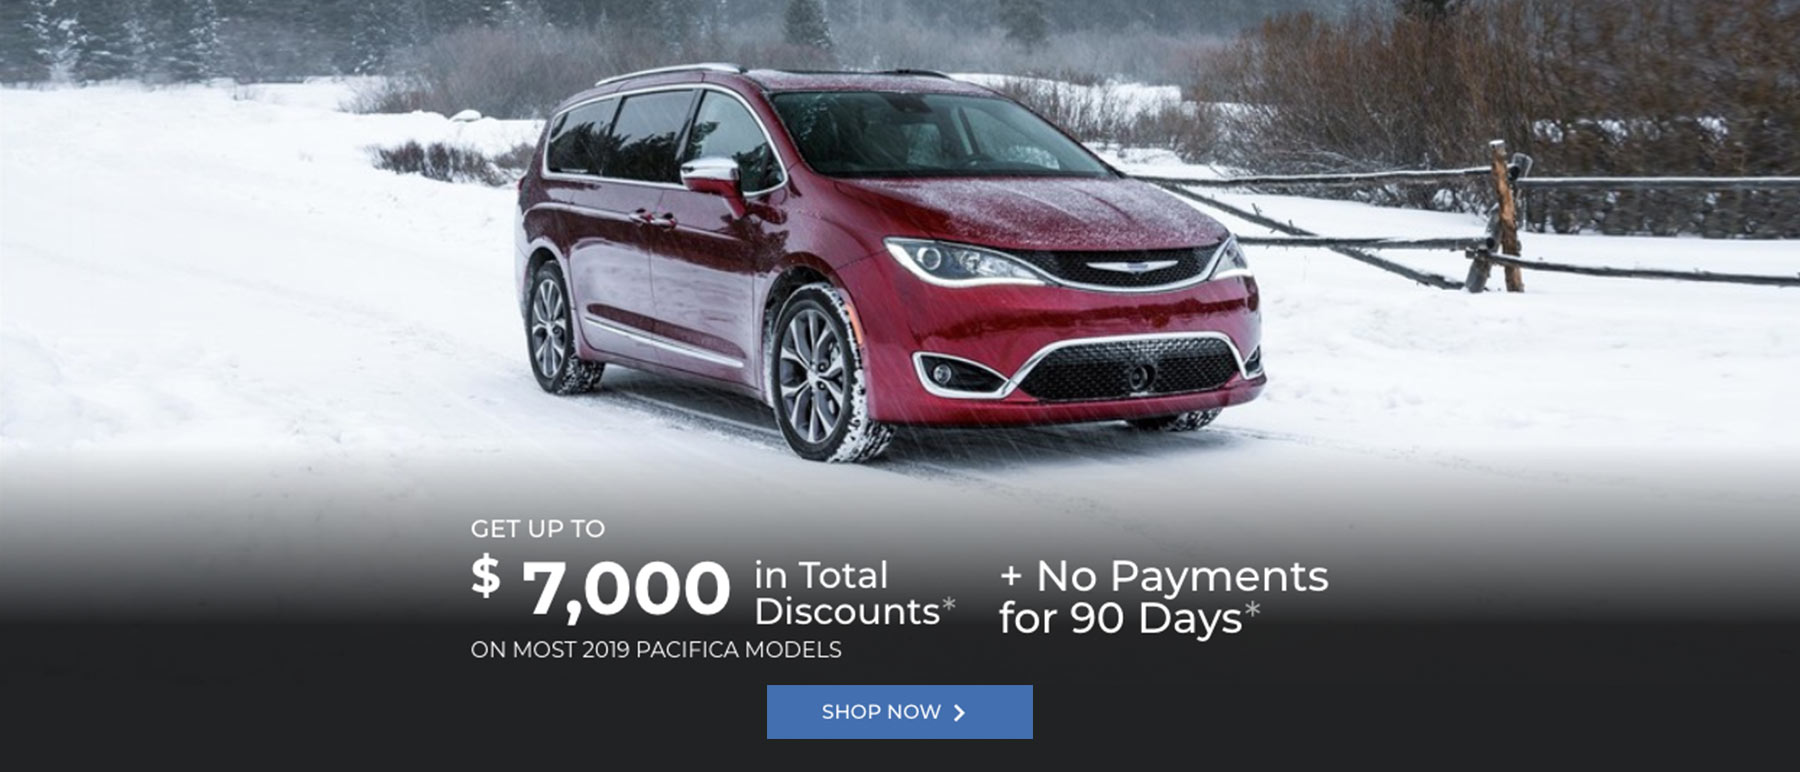 2019 February Chrysler OEM Offer